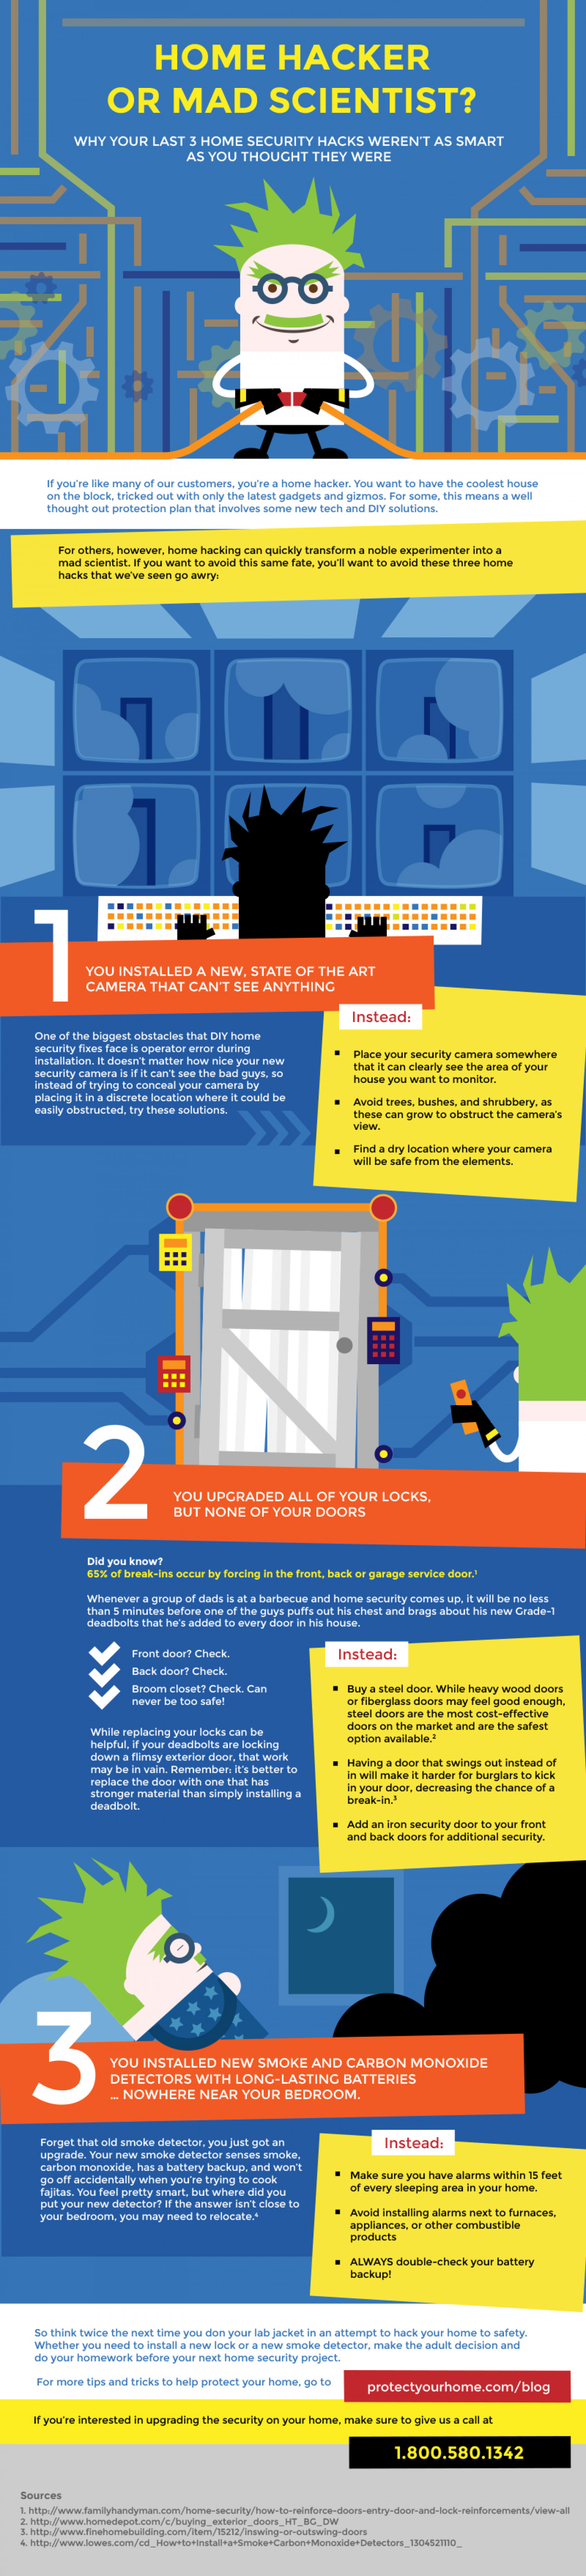 Home Hacker or Mad Scientist? Why Your Last 3 Home Security Hacks Weren't as Smart as You Thought They Were Infographic